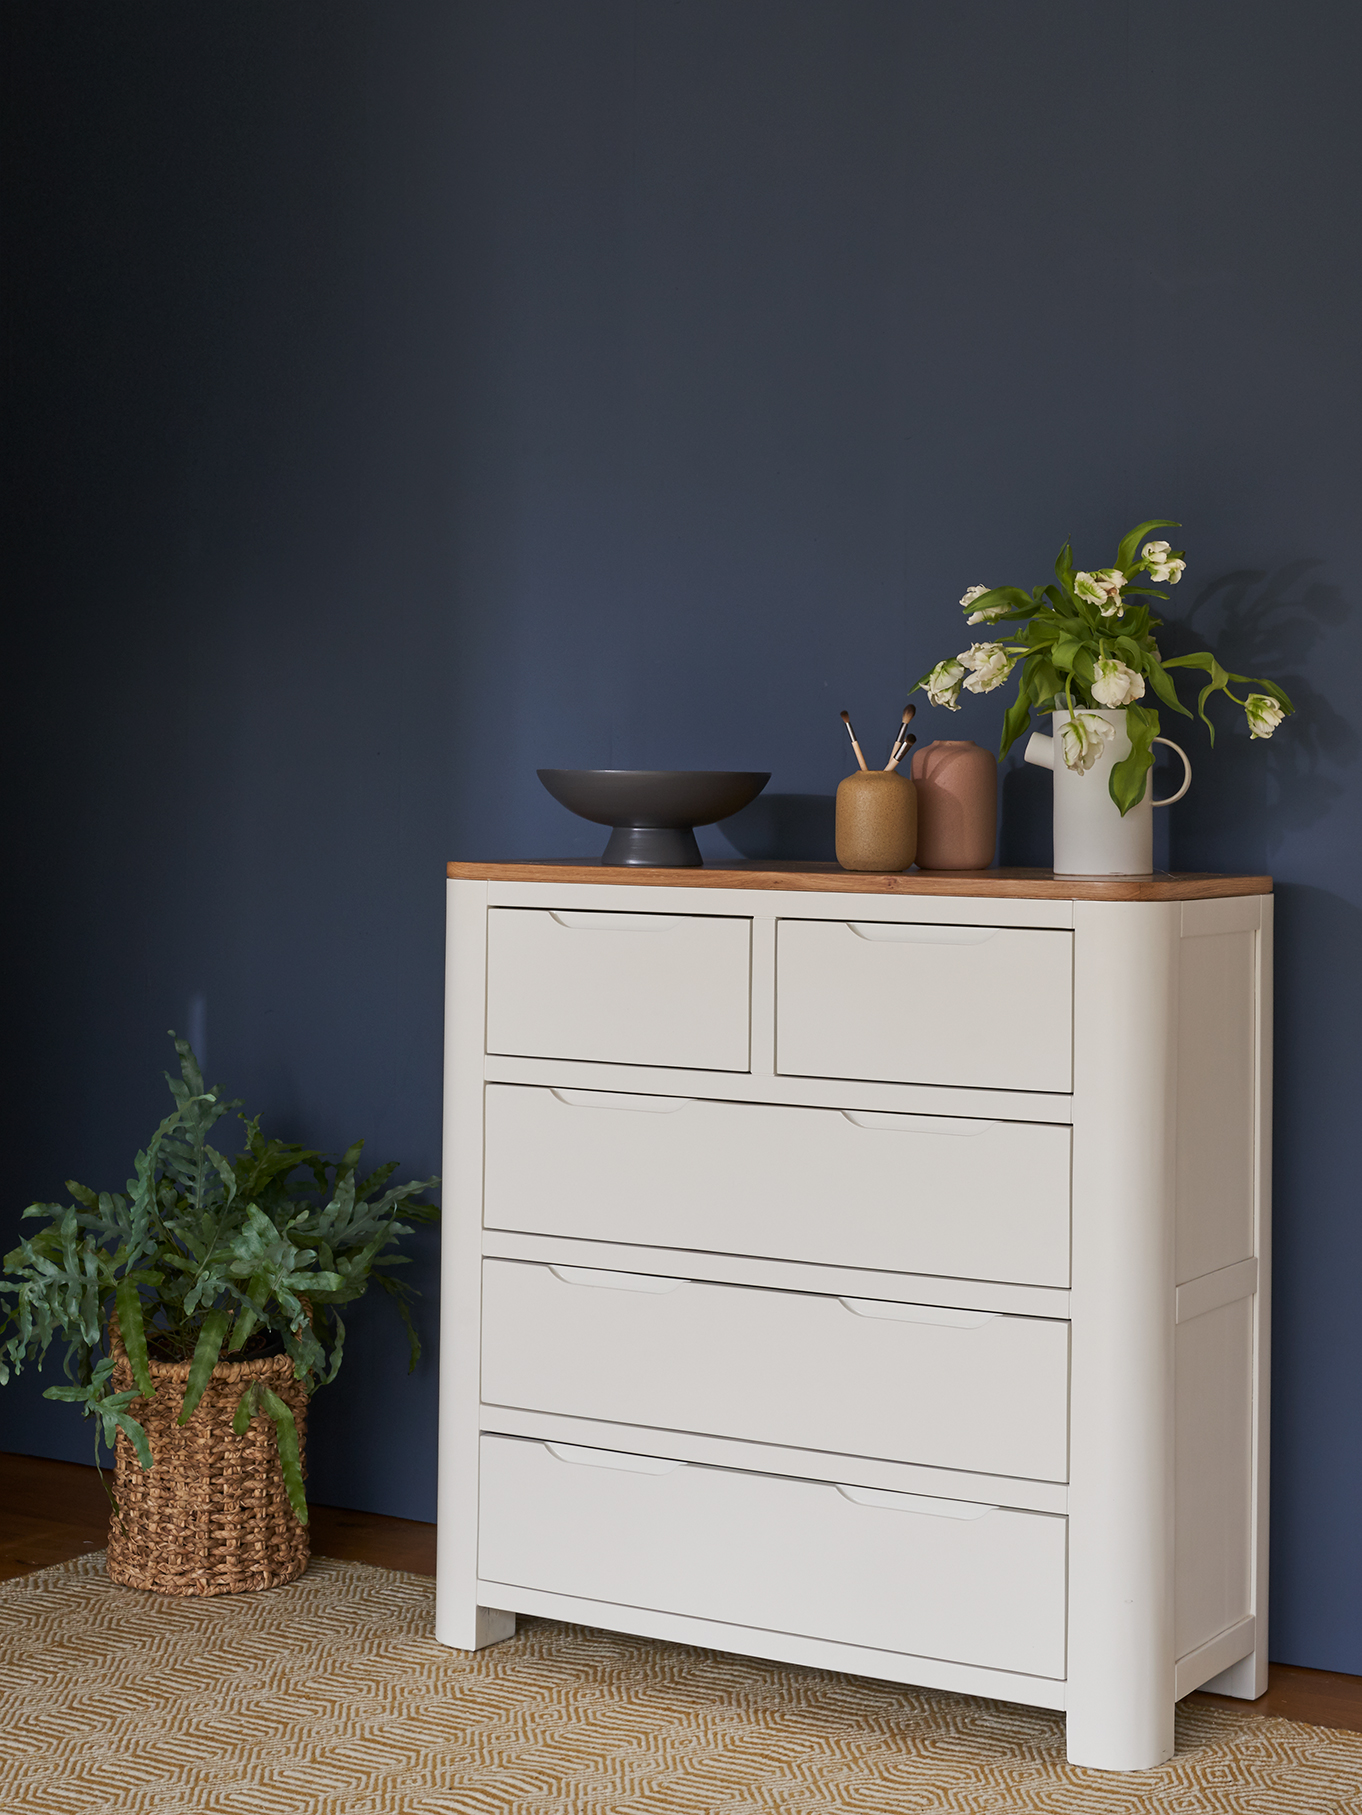 Hove white painted chest of drawers